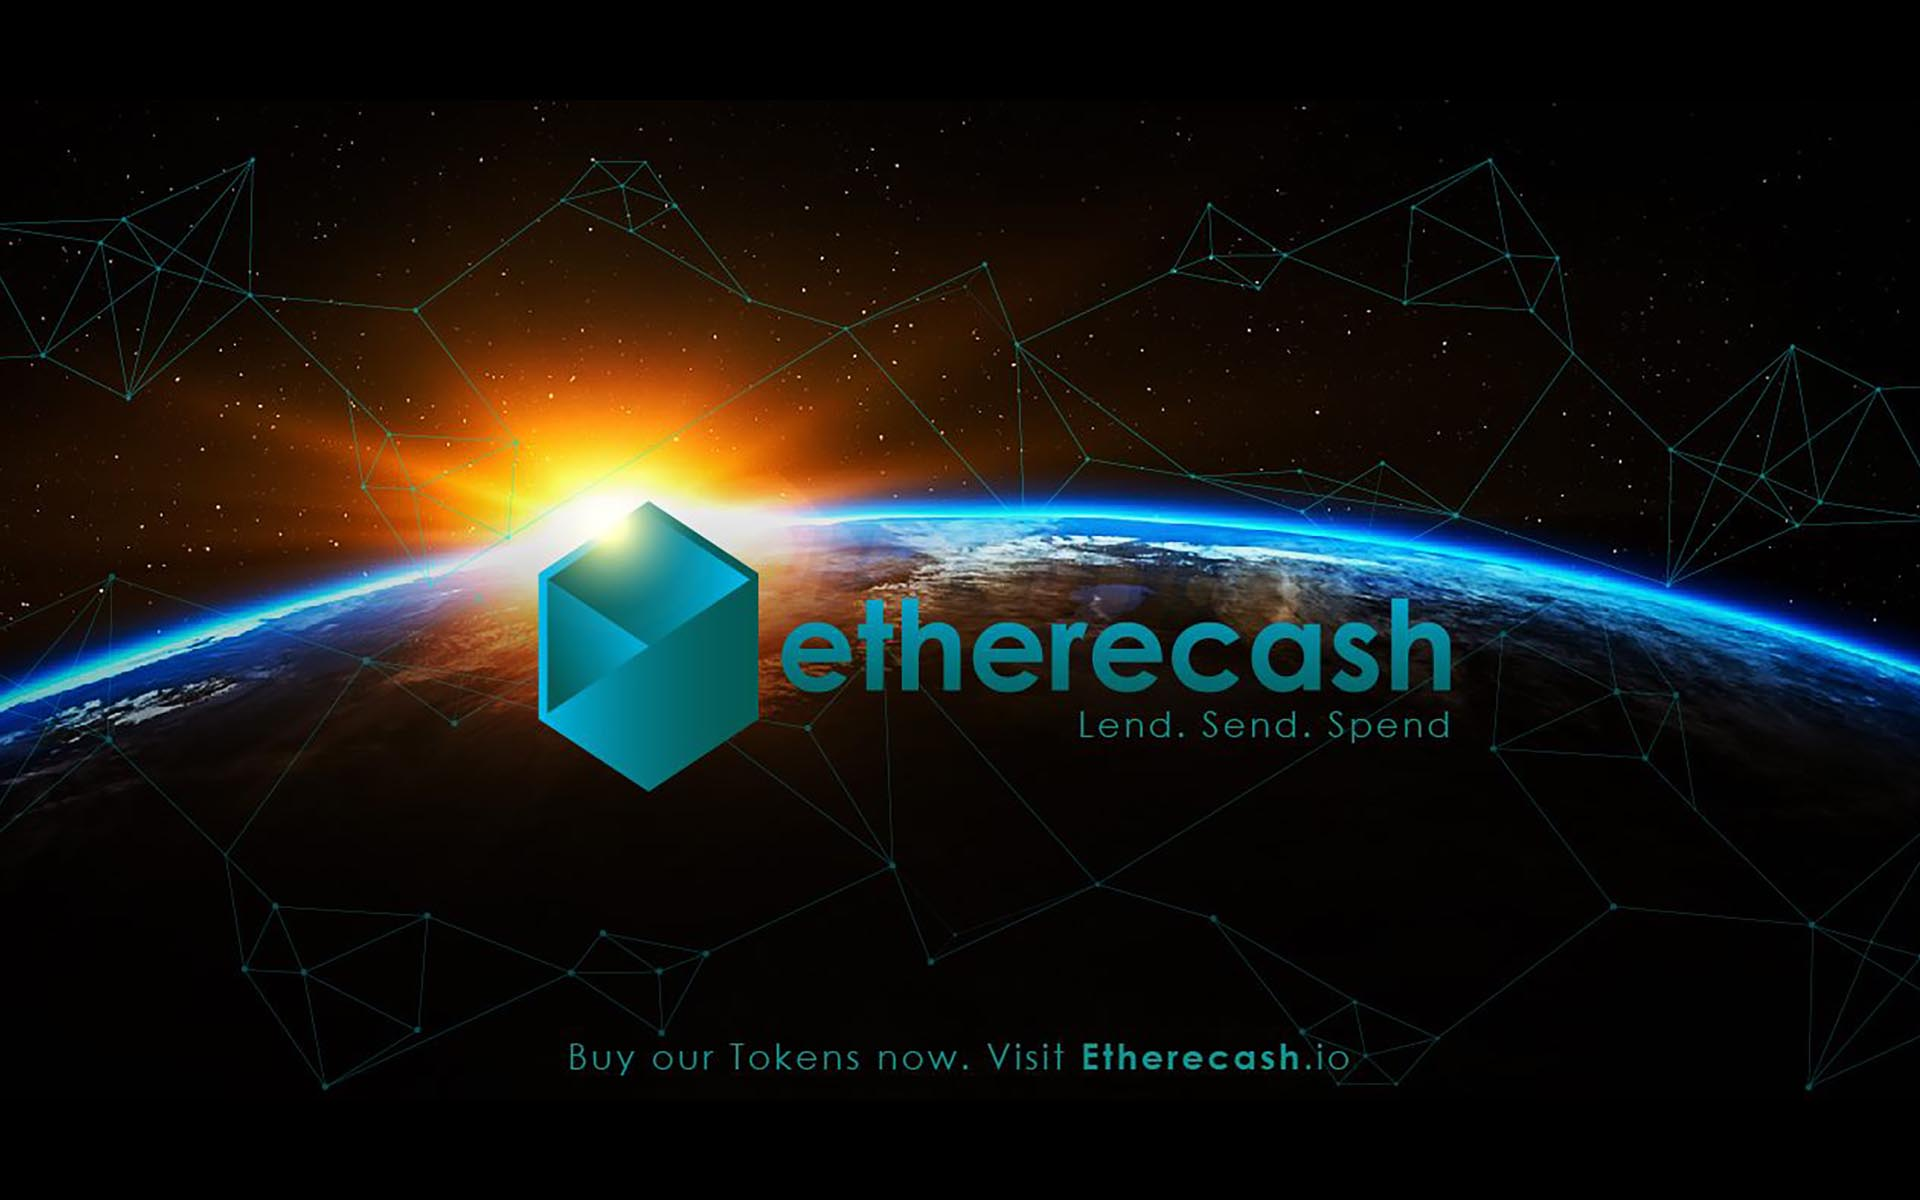 The Etherecash ICO Token Pre-Sale Reported As A Huge Success - ICO Set To Go Live November 15th - Etherecash Is A Peer To Peer Lending Platform Connecting Crypto and Fiat Currencies In A Unique Way